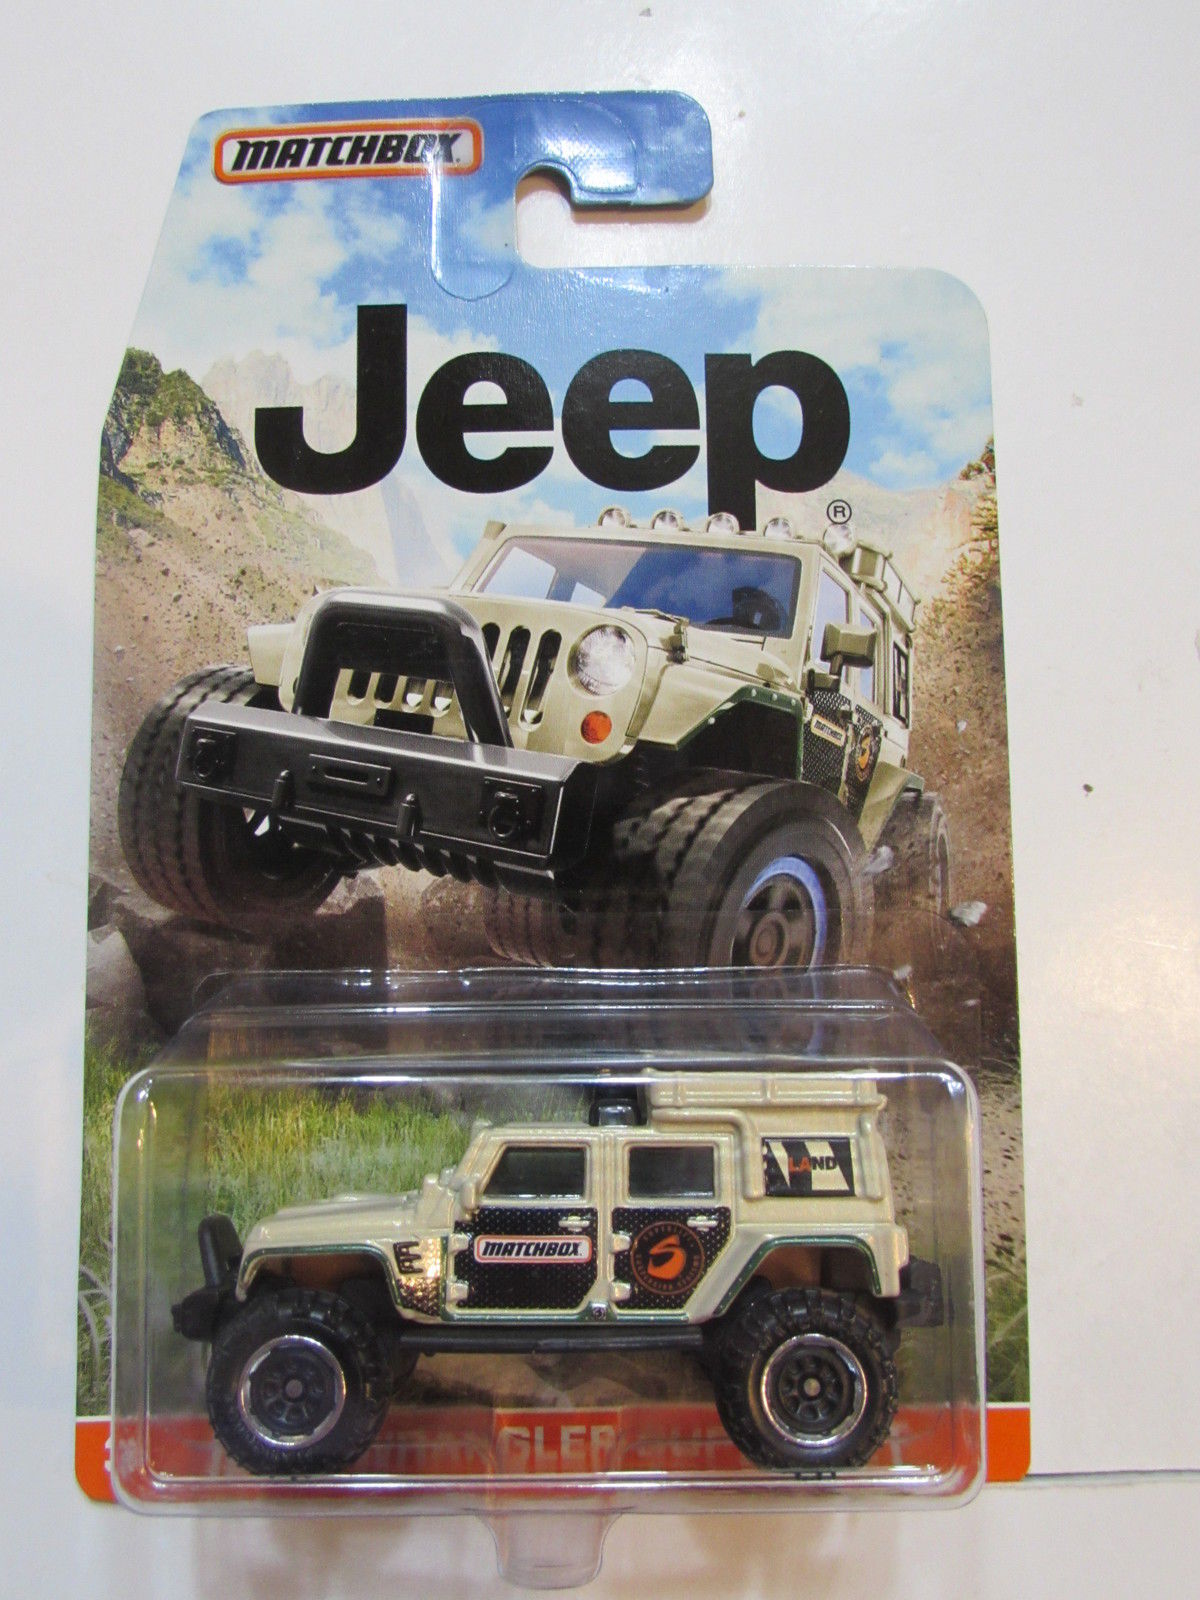 MATCHBOX 2015 JEEP WRANGLER SUPERLIFT